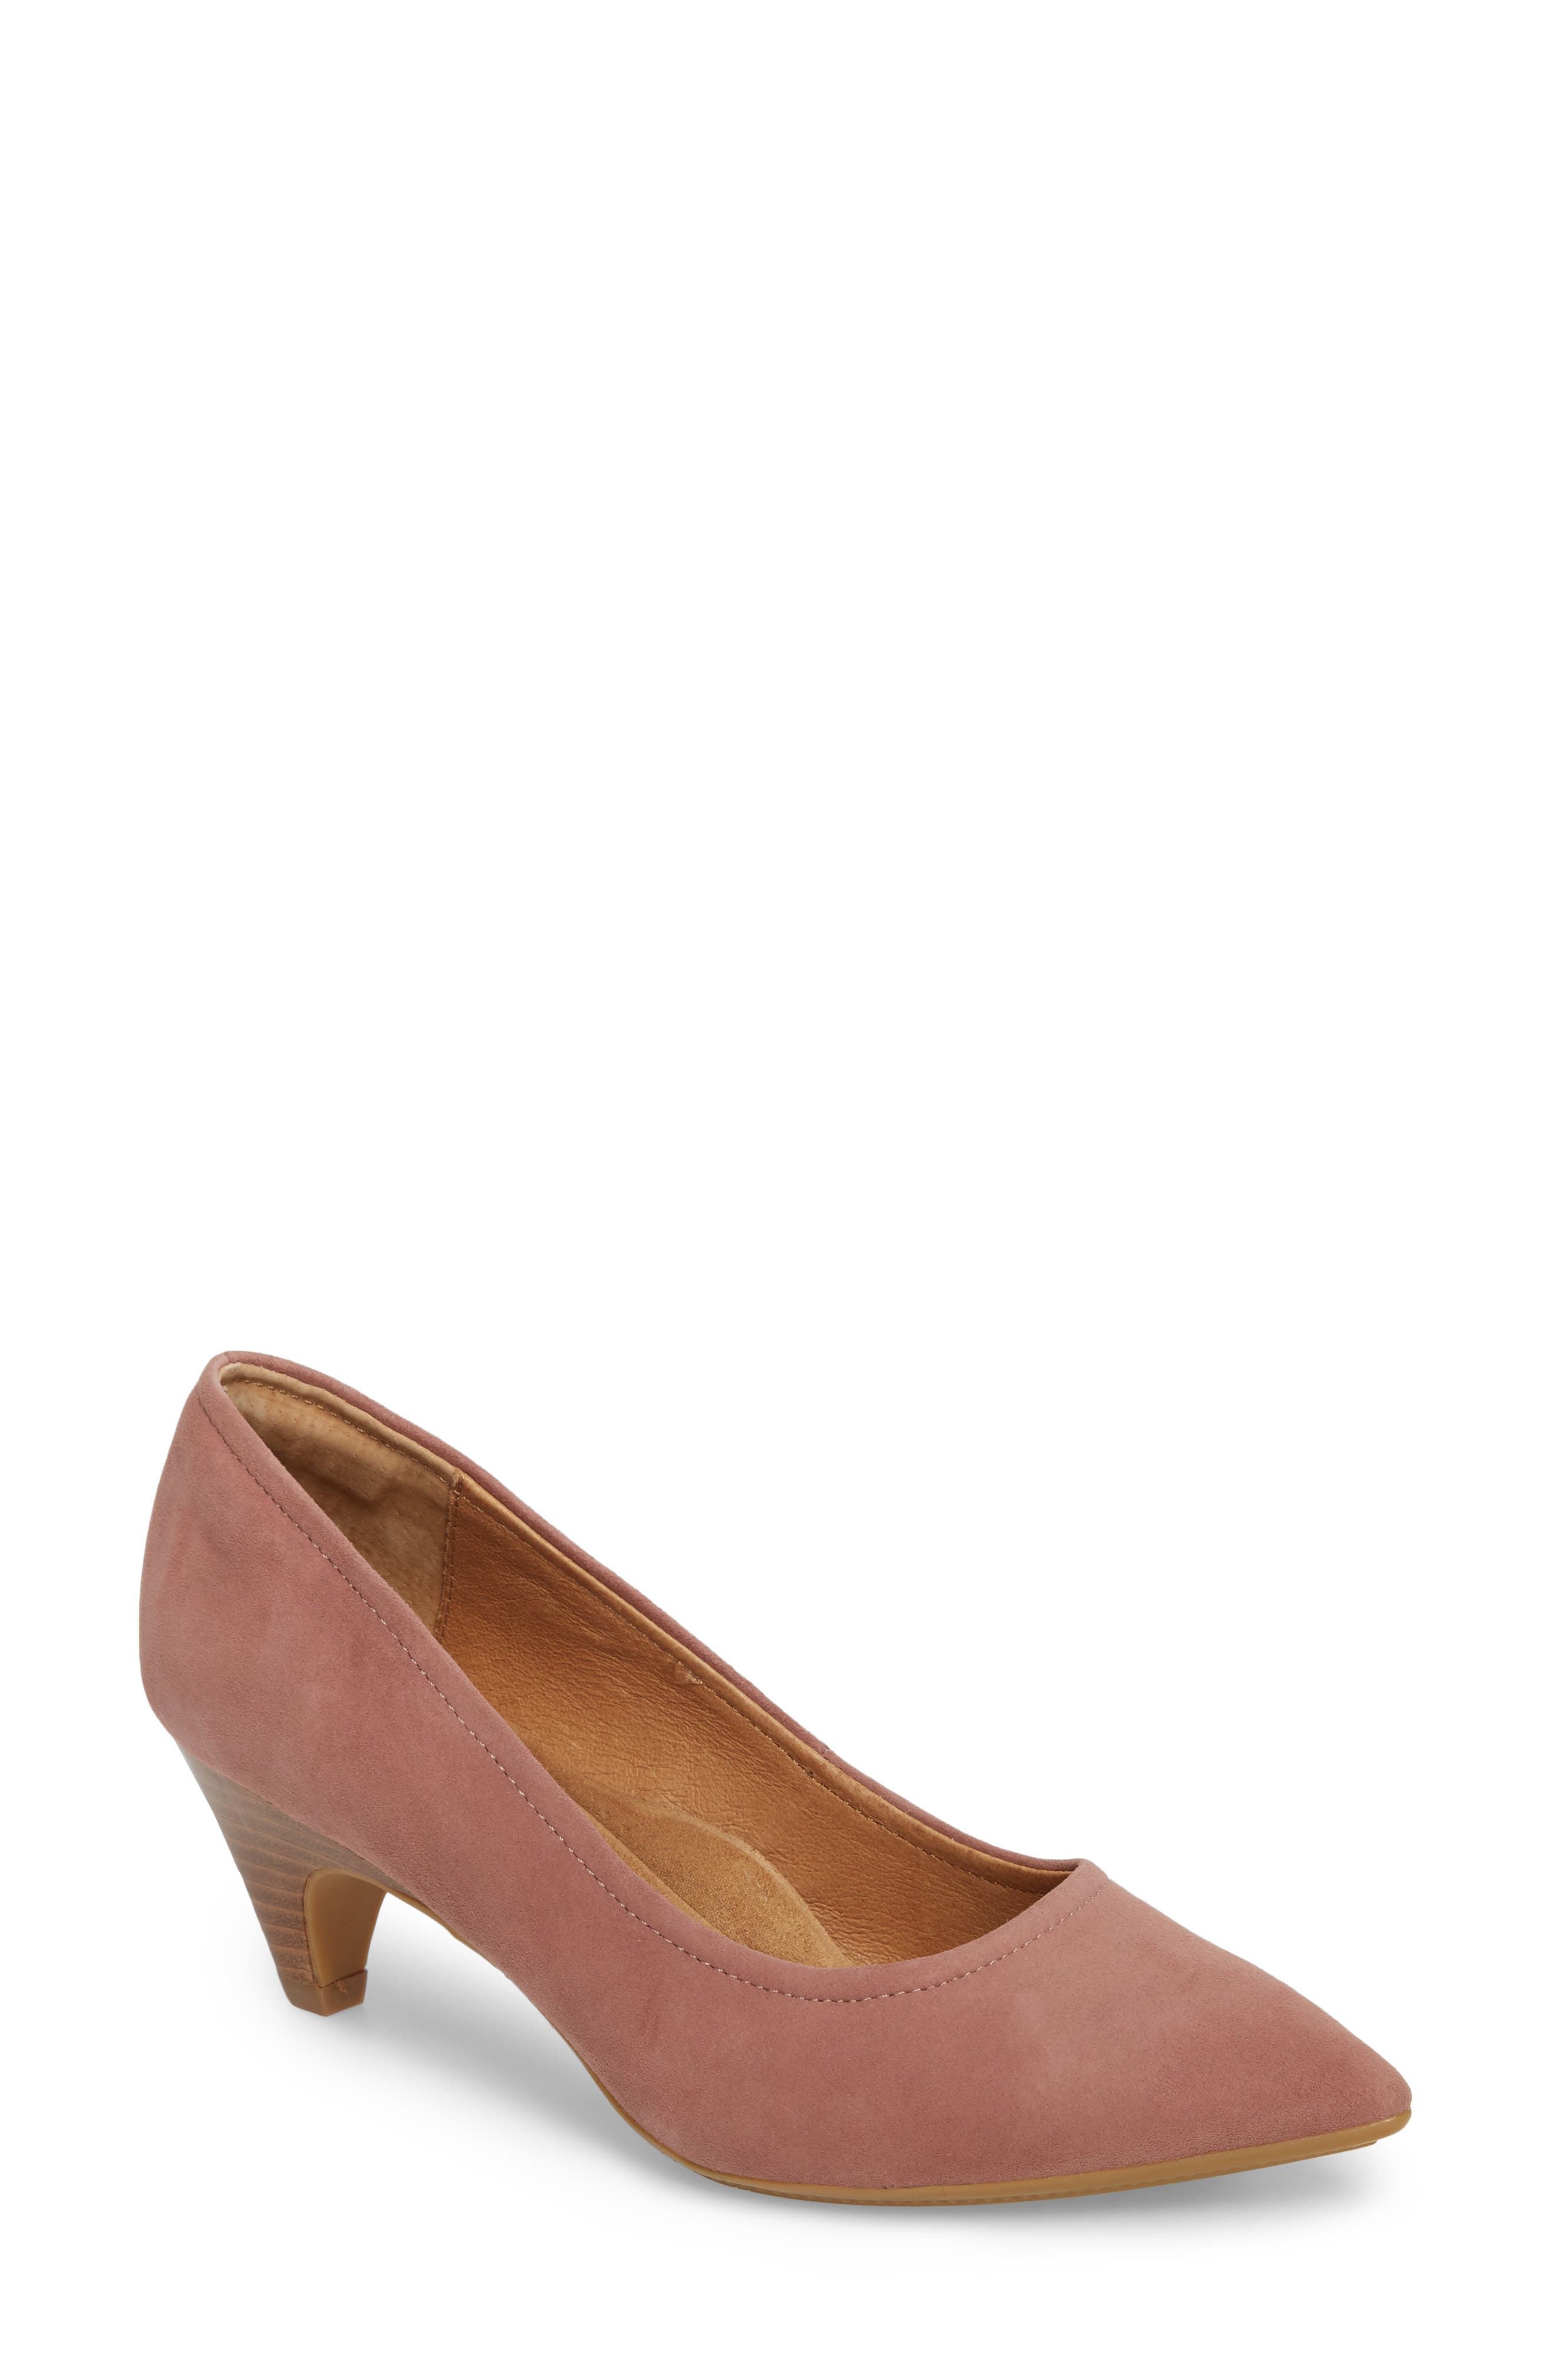 Altessa II Pump,                             Main thumbnail 1, color,                             MULBERRY SUEDE